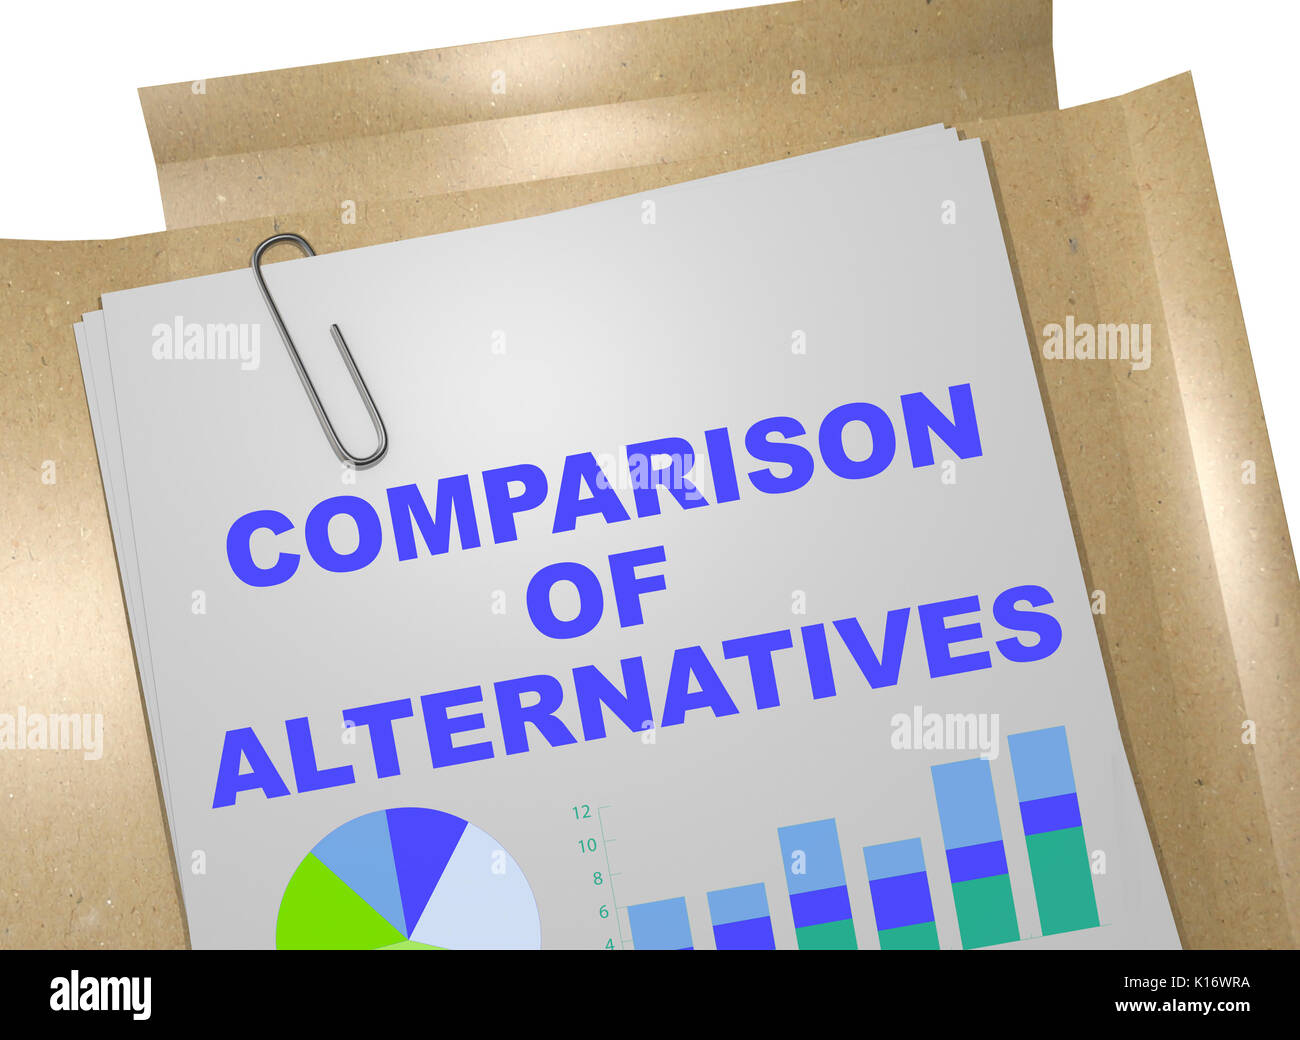 3D illustration of 'COMPARISON OF ALTERNATIVES' title on business document - Stock Image